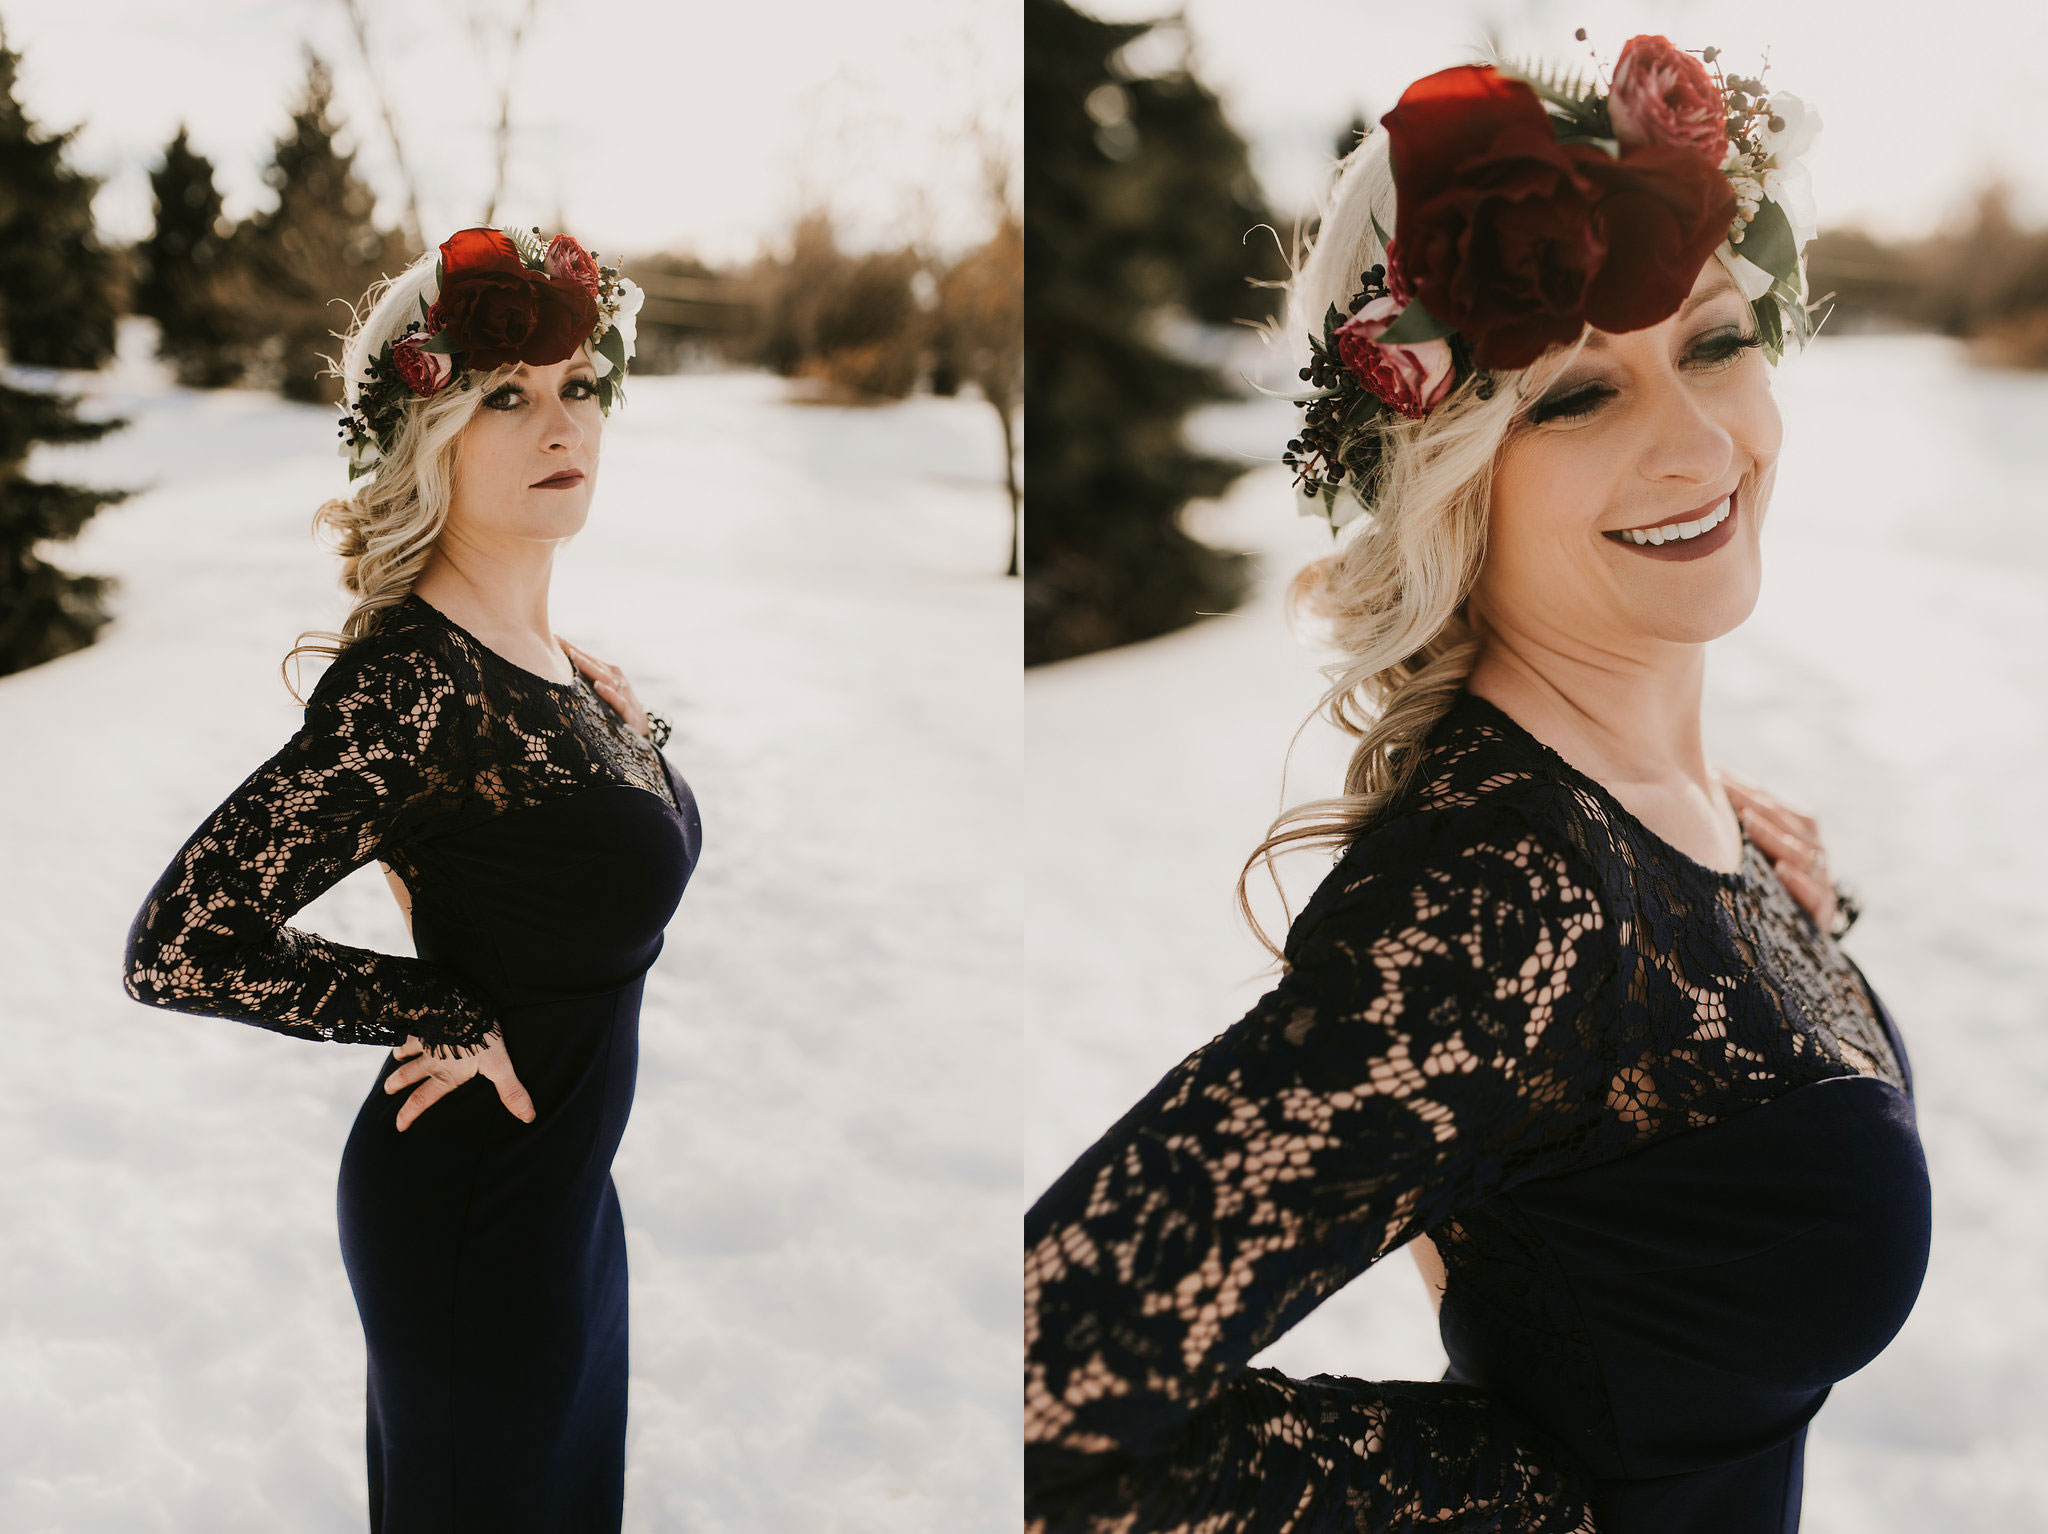 winter-wedding-kylene-fitzsimmons-photographer-1.jpg